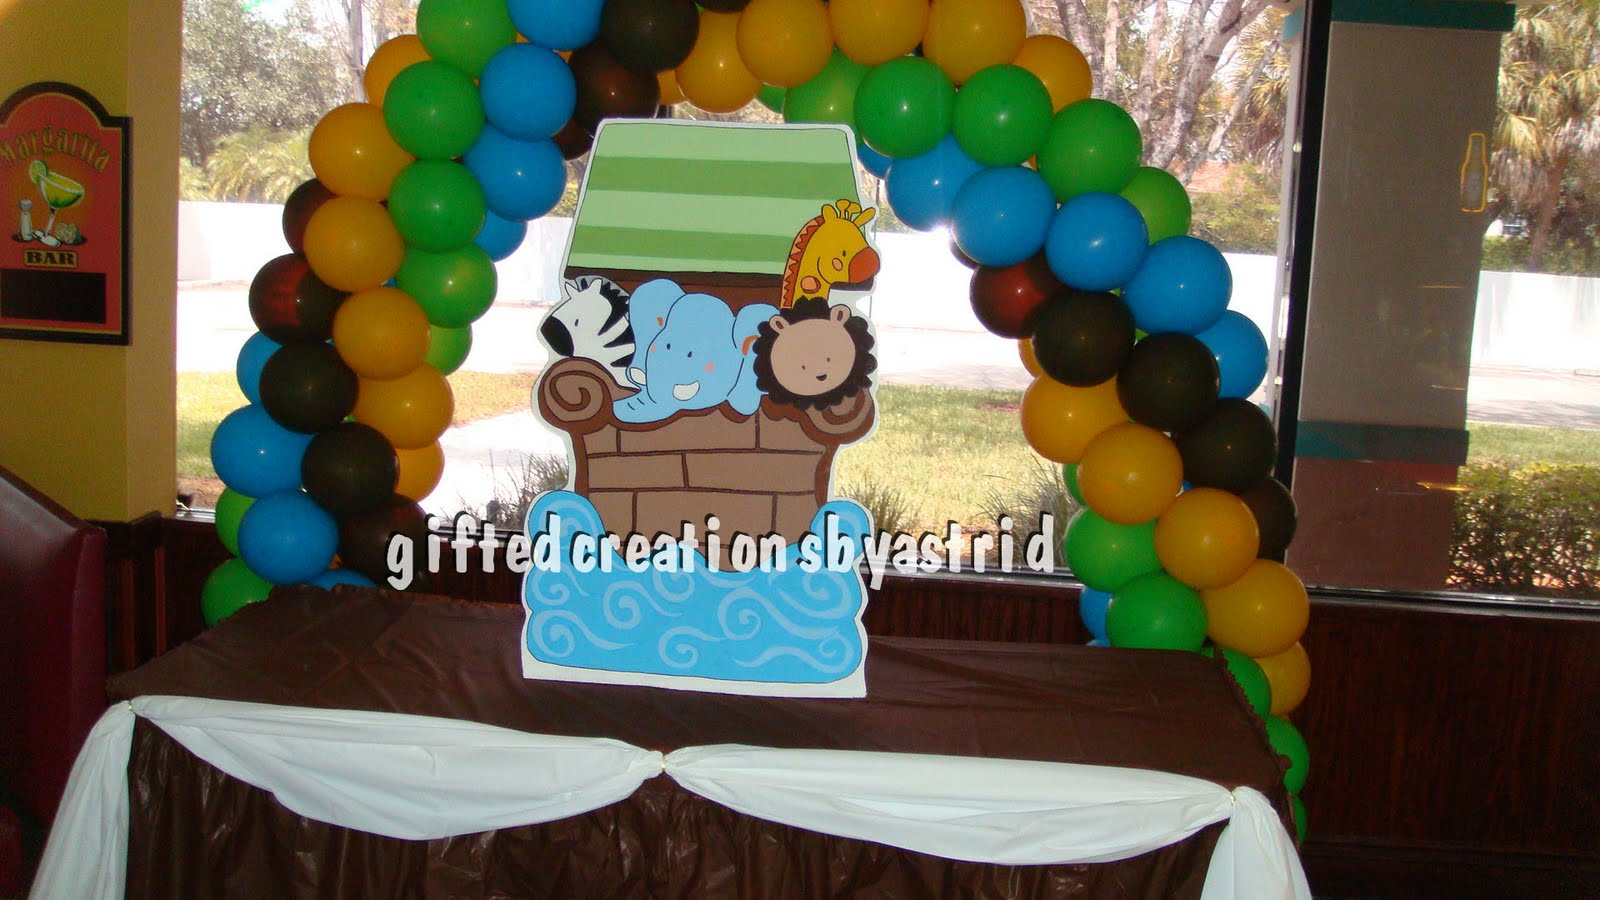 gifted creations by astrid noah 39 s ark baby shower